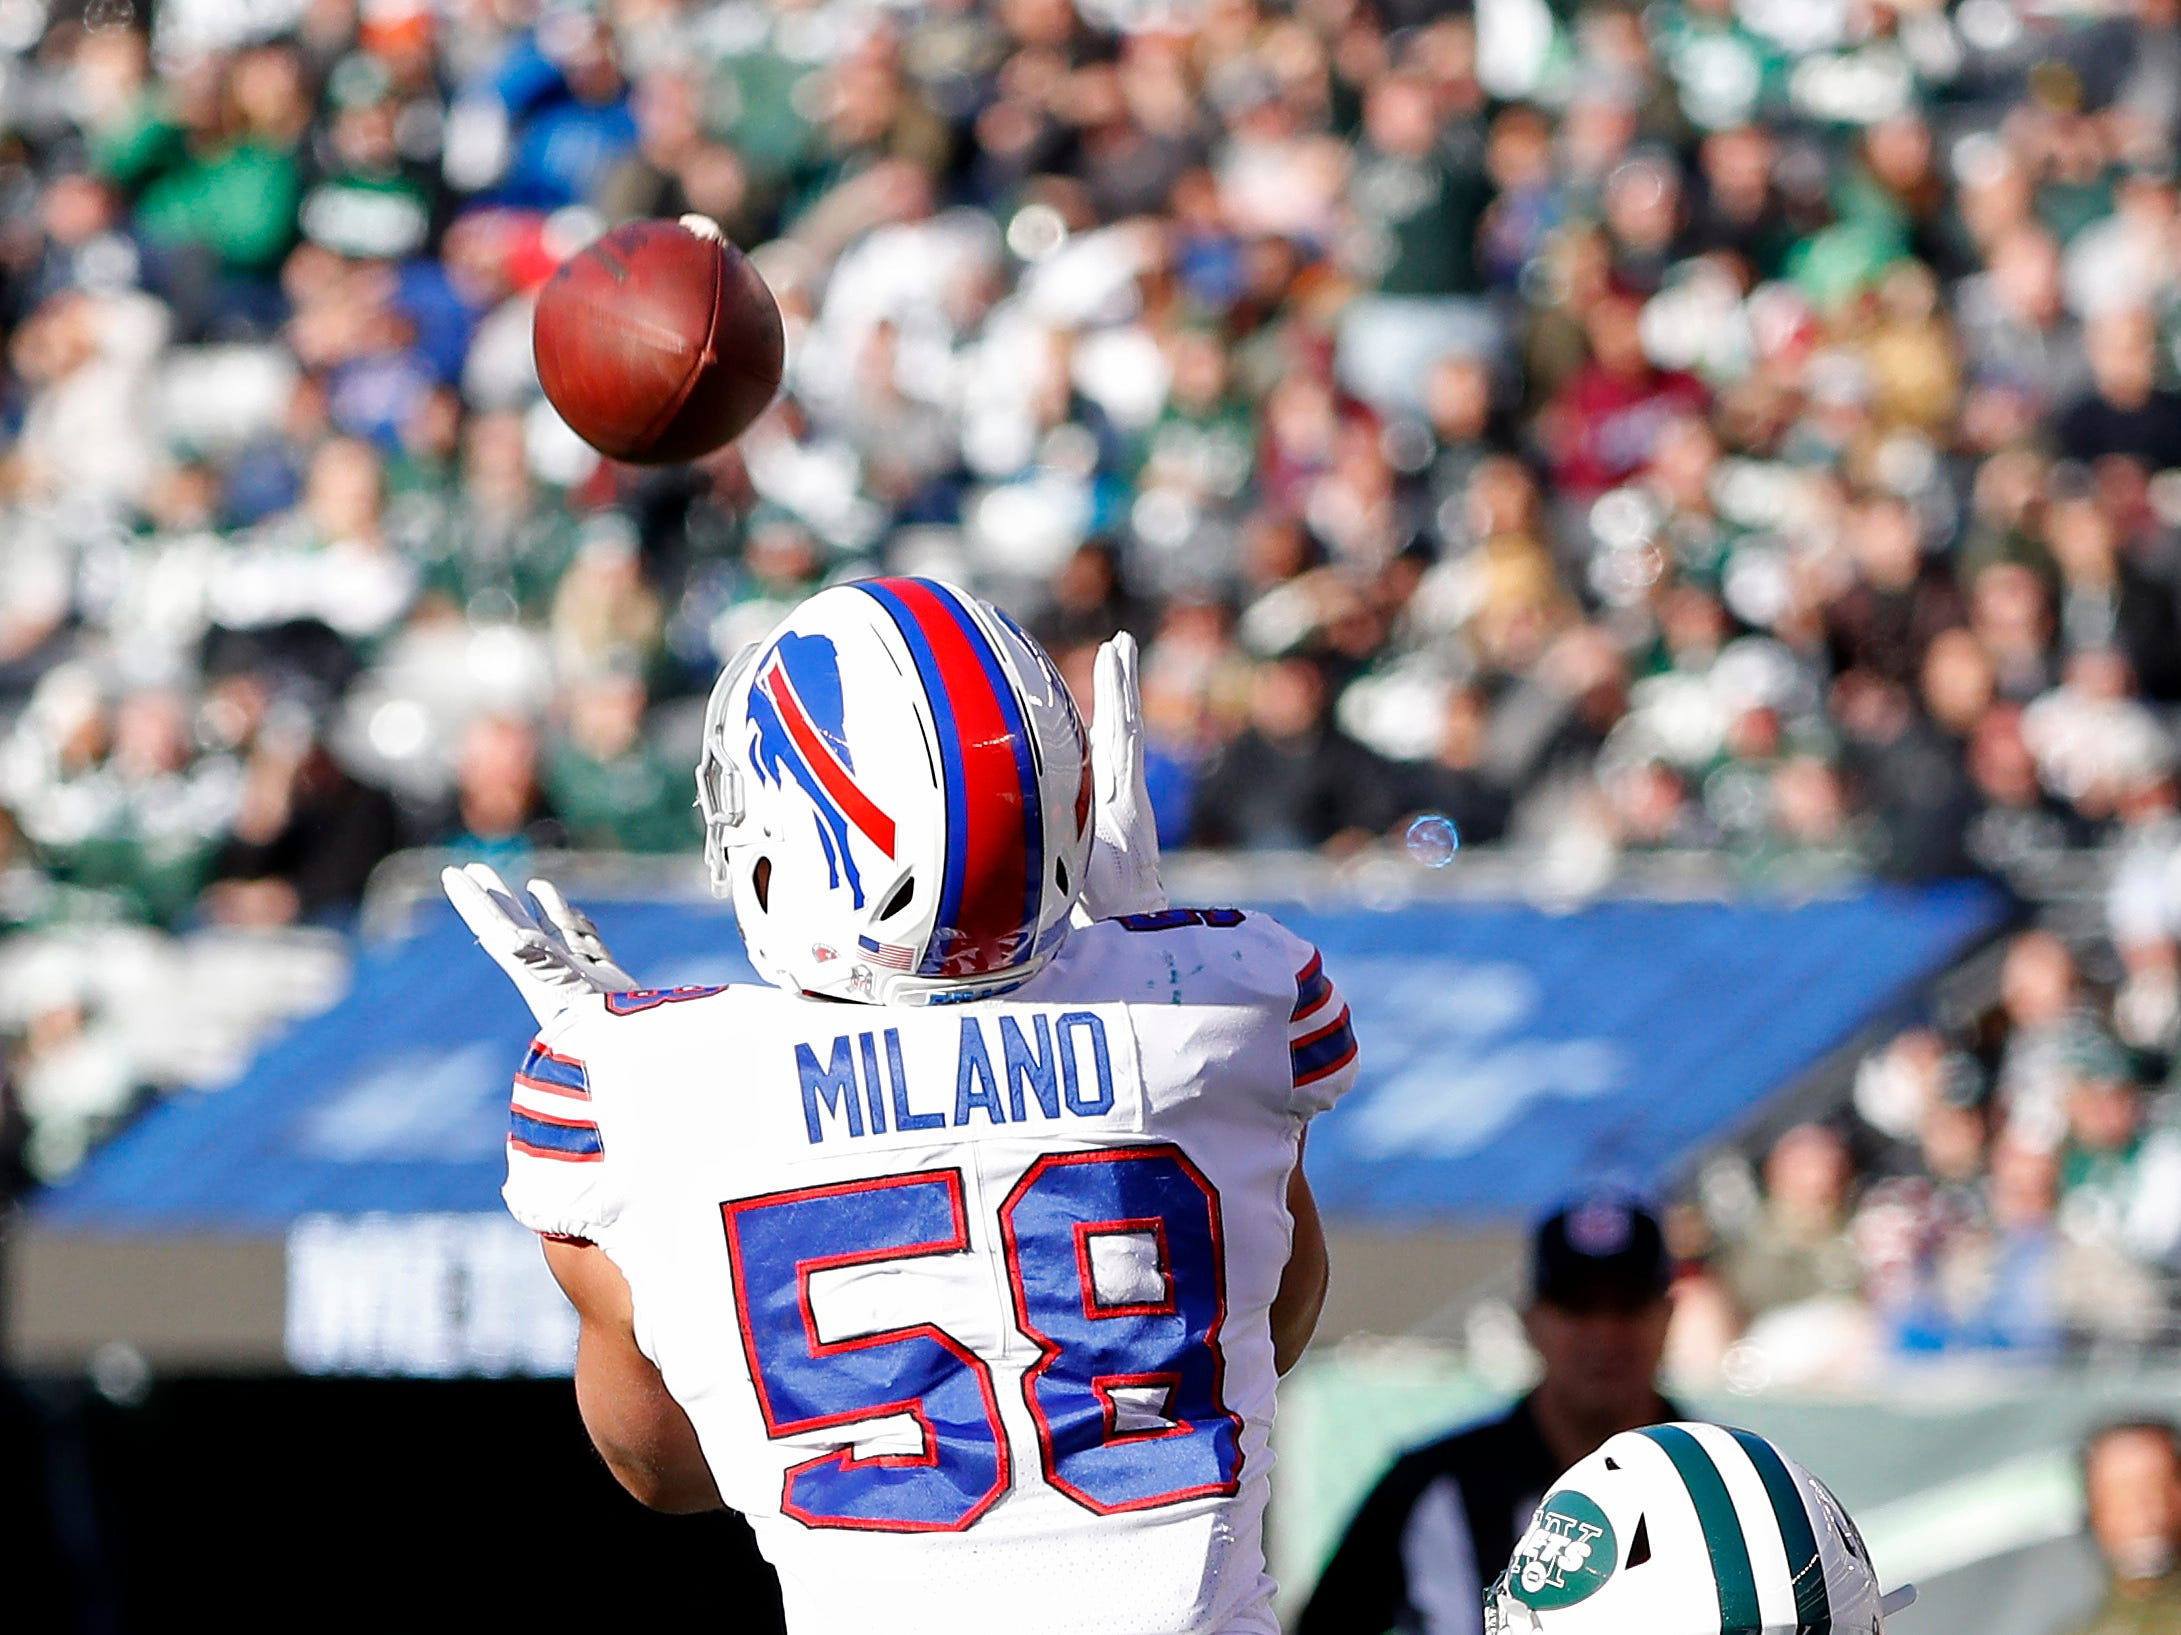 EAST RUTHERFORD, NEW JERSEY - NOVEMBER 11: Matt Milano #58 of the Buffalo Bills intercepts the pass during the second quarter against the New York Jets at MetLife Stadium on November 11, 2018 in East Rutherford, New Jersey. (Photo by Michael Owens/Getty Images)